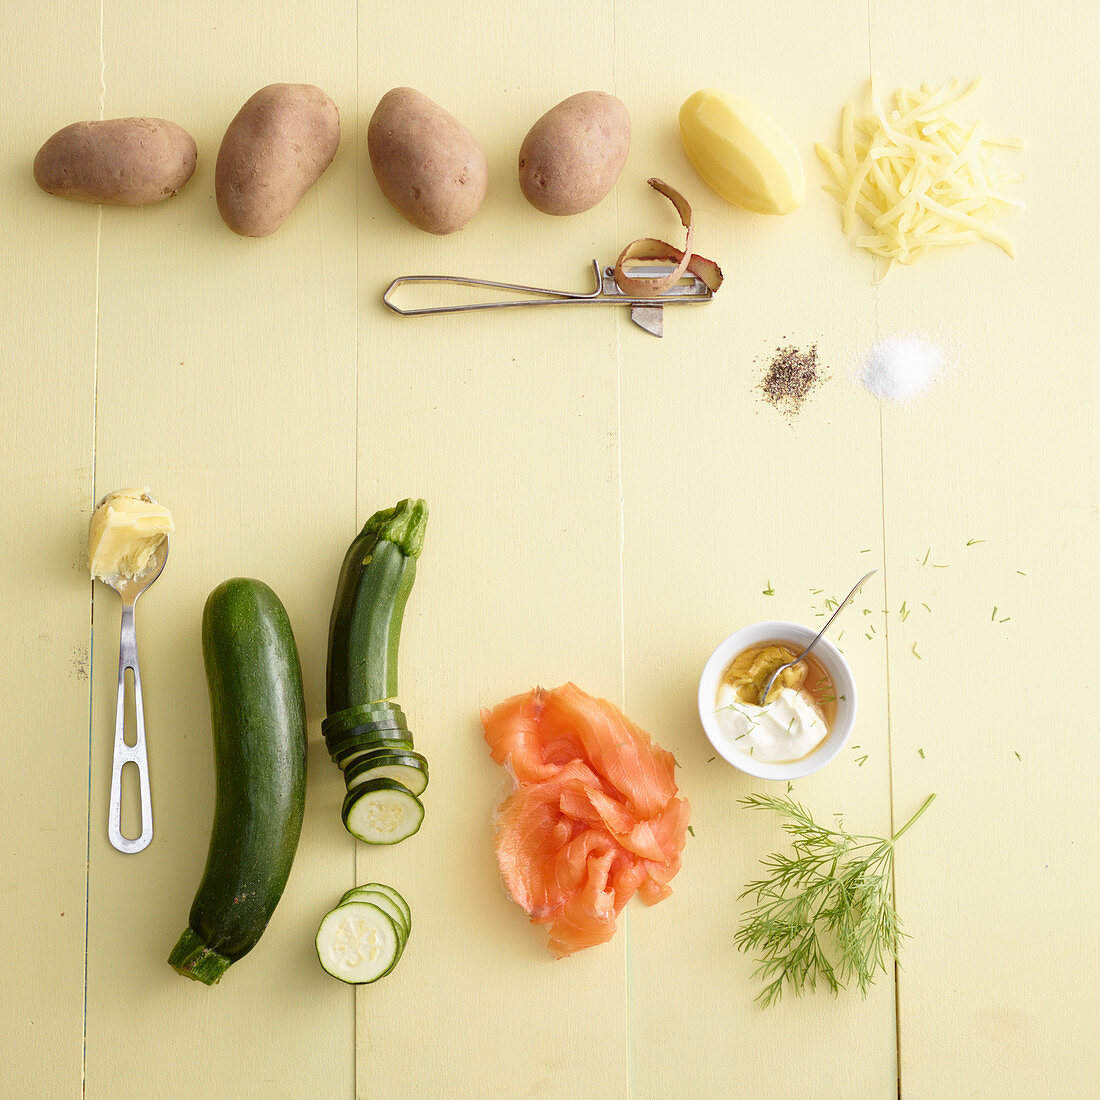 Ingredients for zucchini röstis with smoked salmon